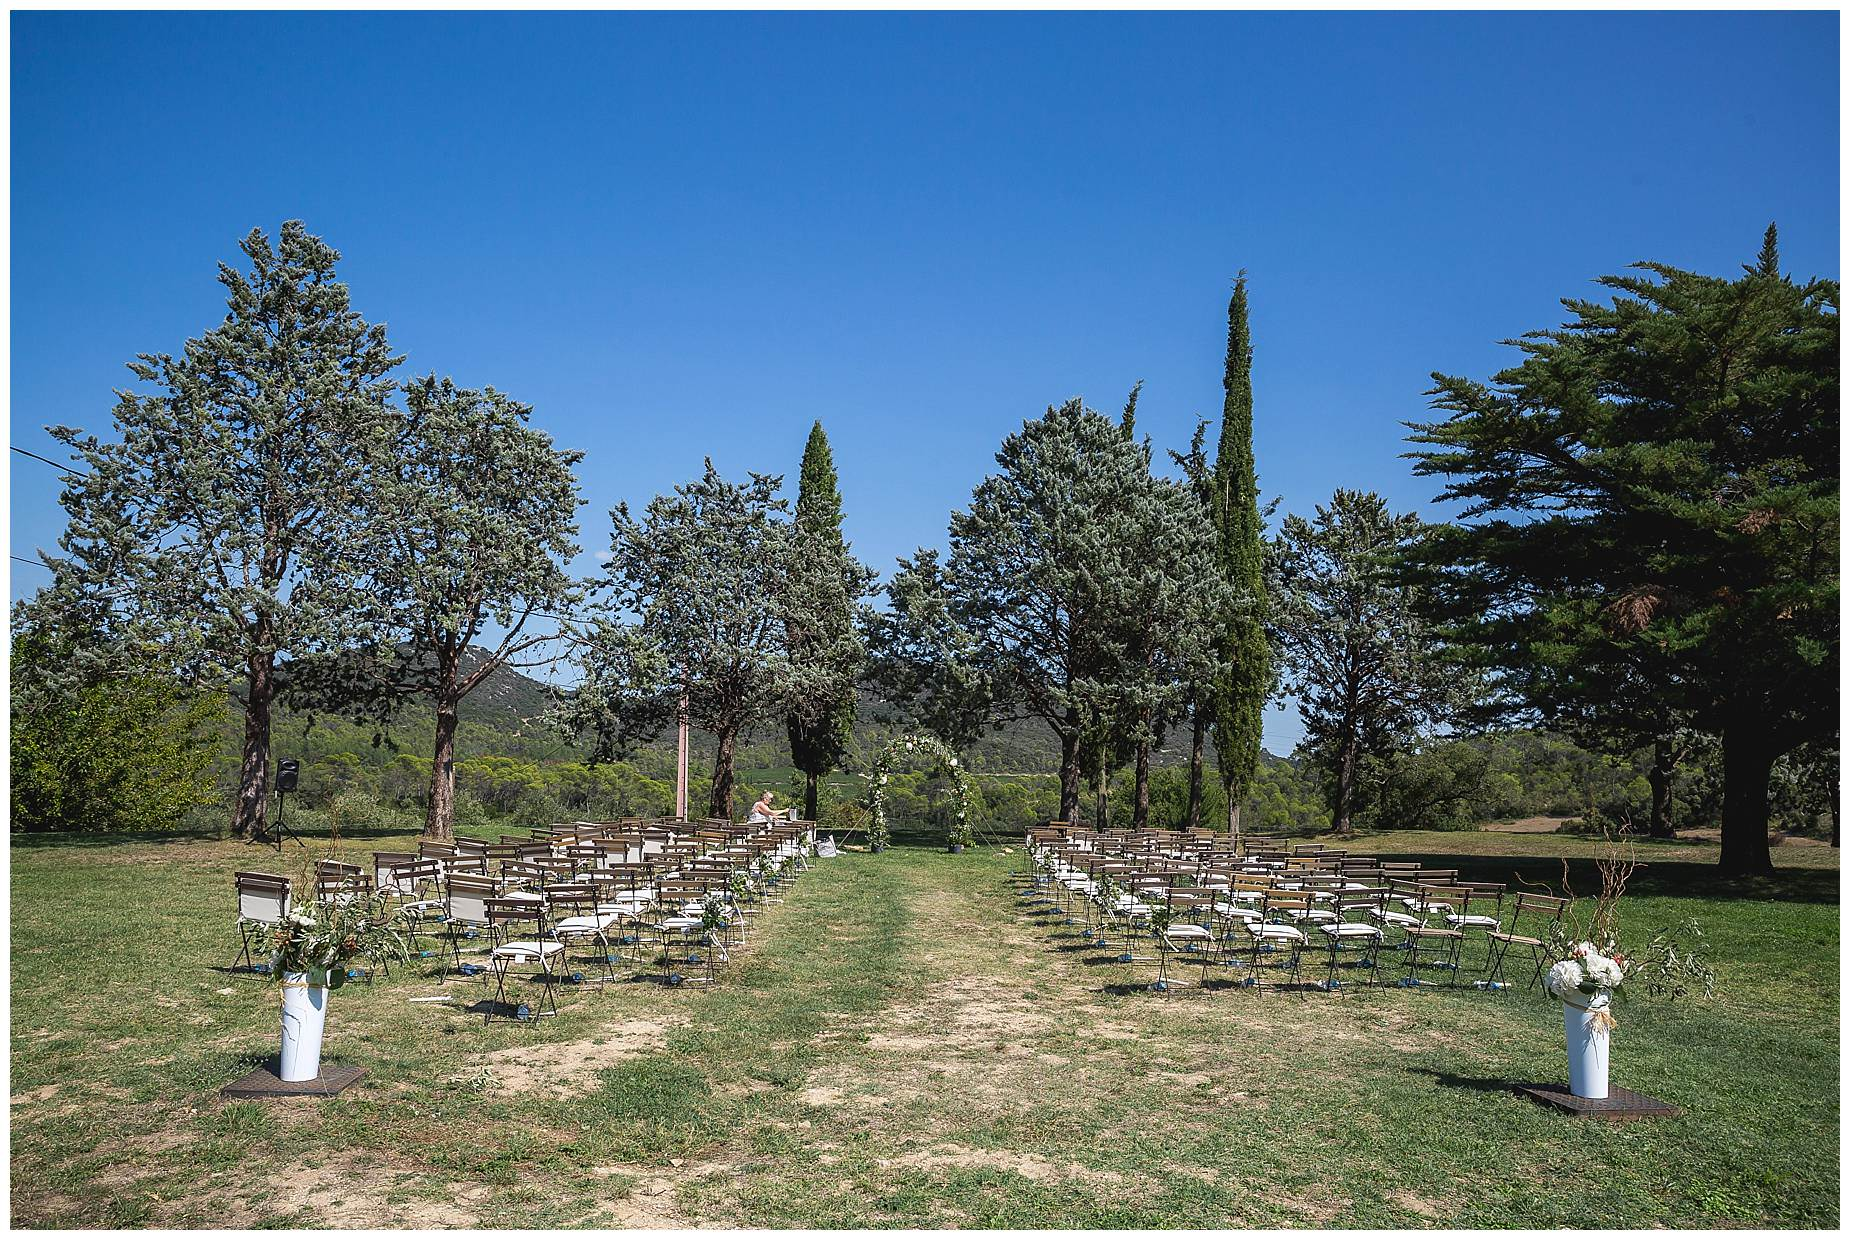 Domaine Saint Germaine outdoor wedding ceremony set up